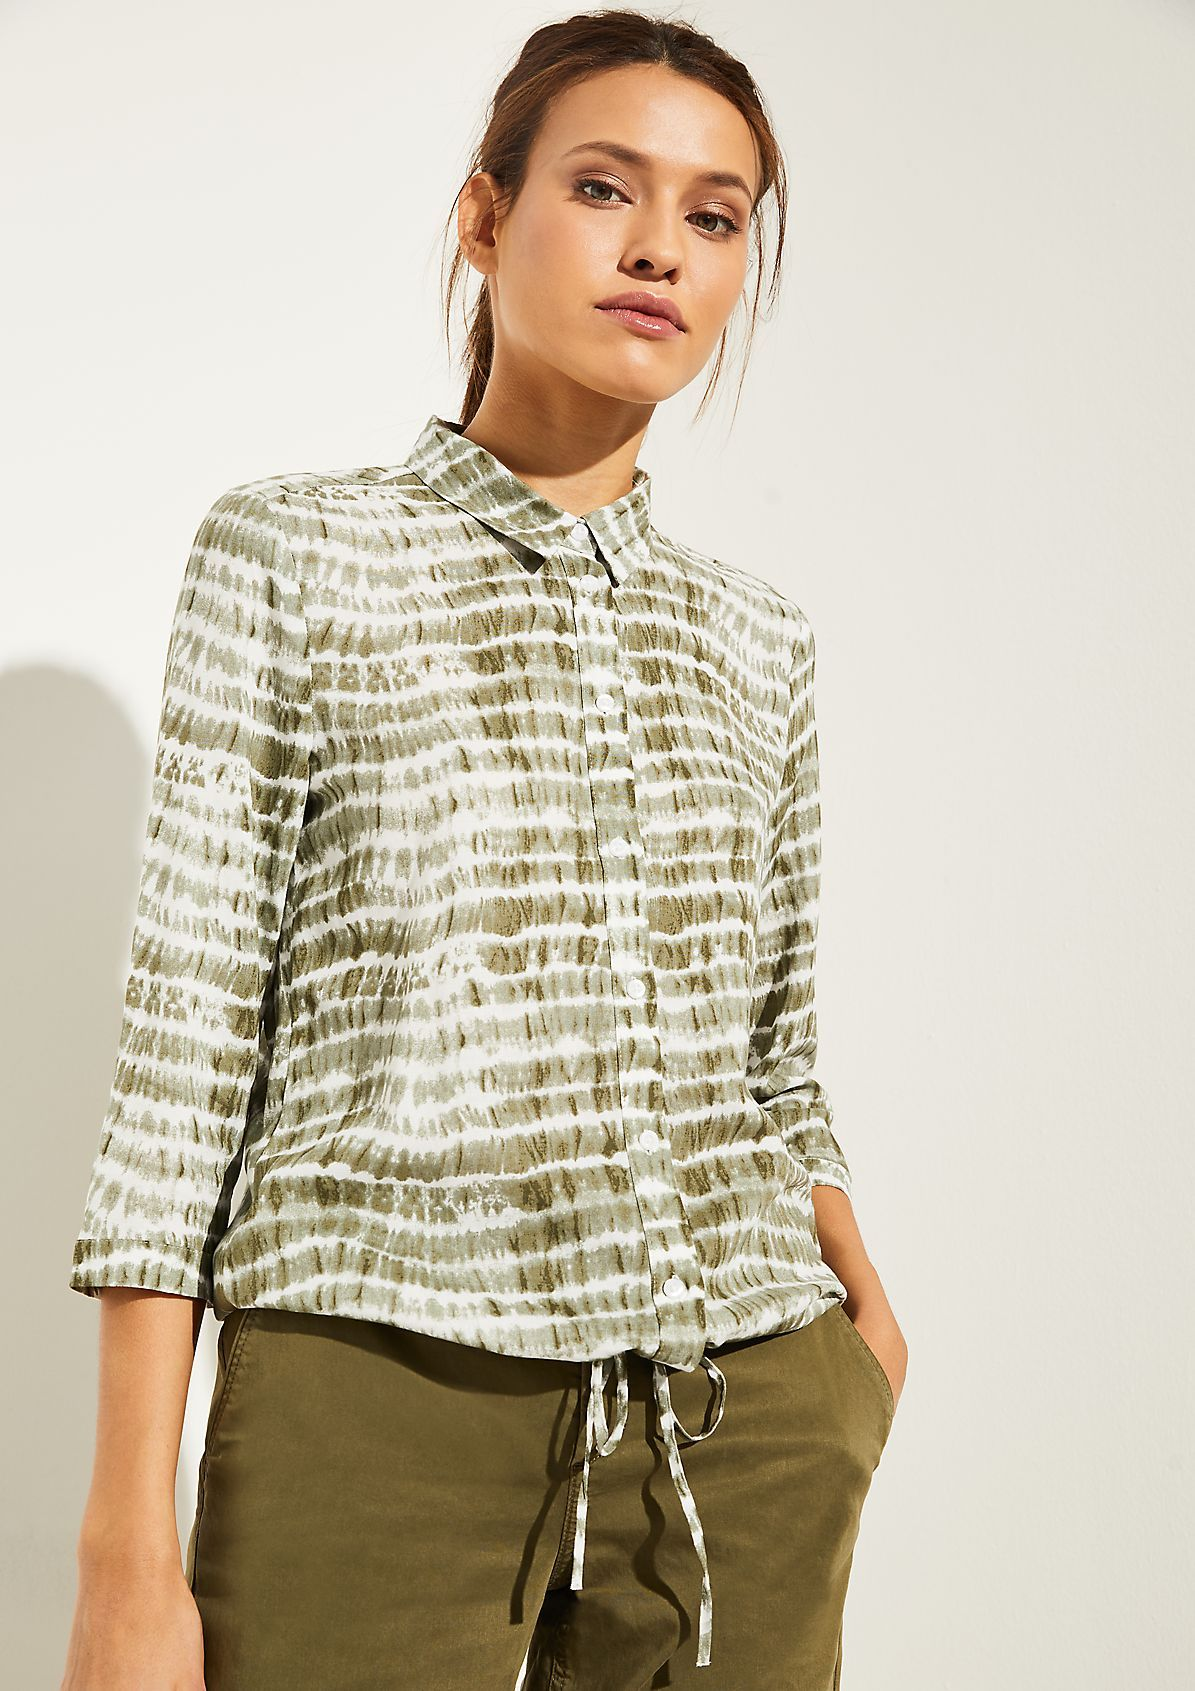 comma Blouse in a batik look with drawstring ties